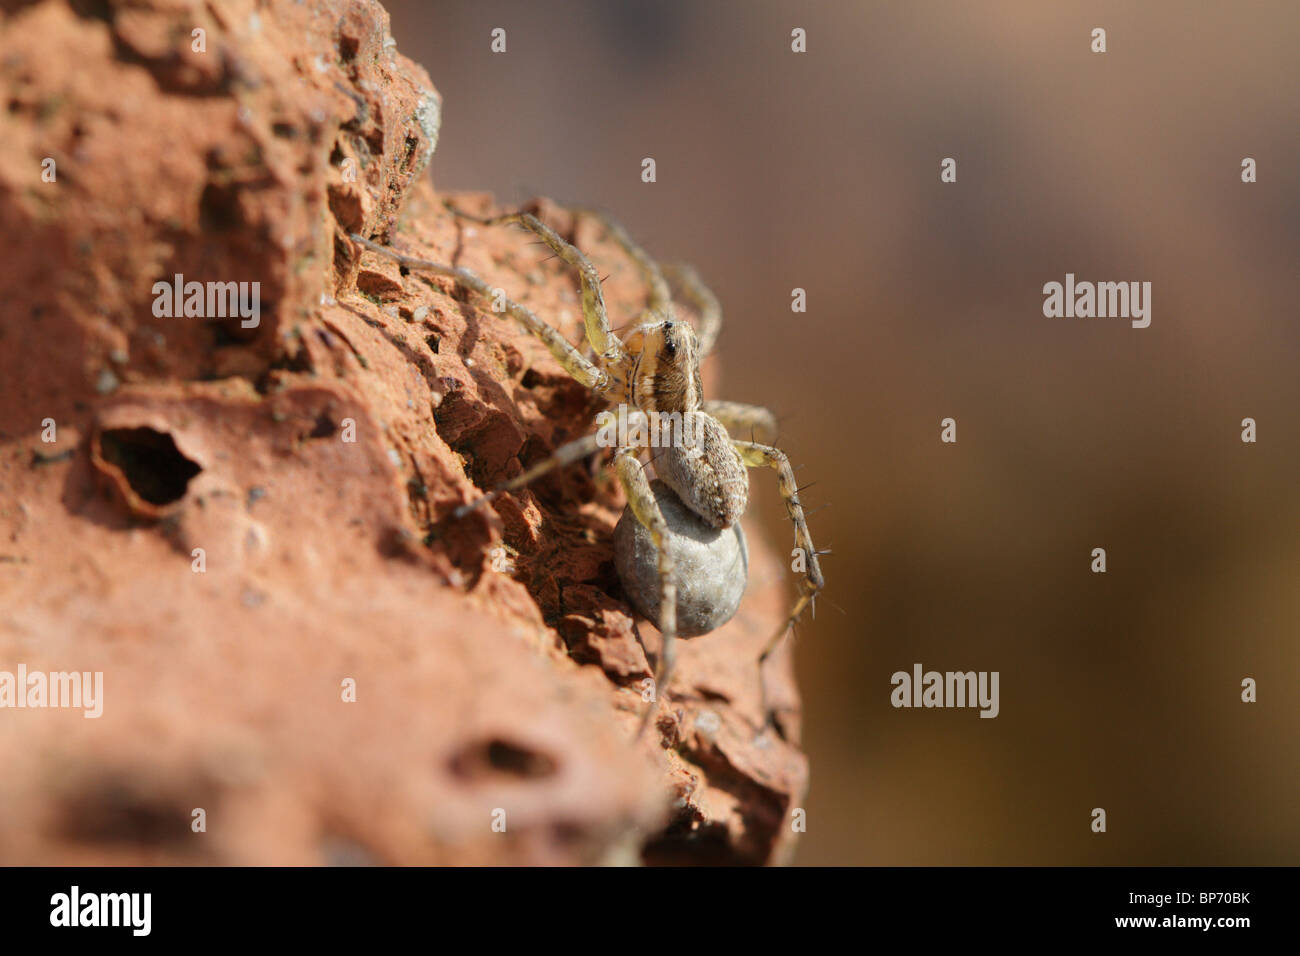 Pardosa amentata, a wolf spider, with her eggs attached to her abdomen - Stock Image